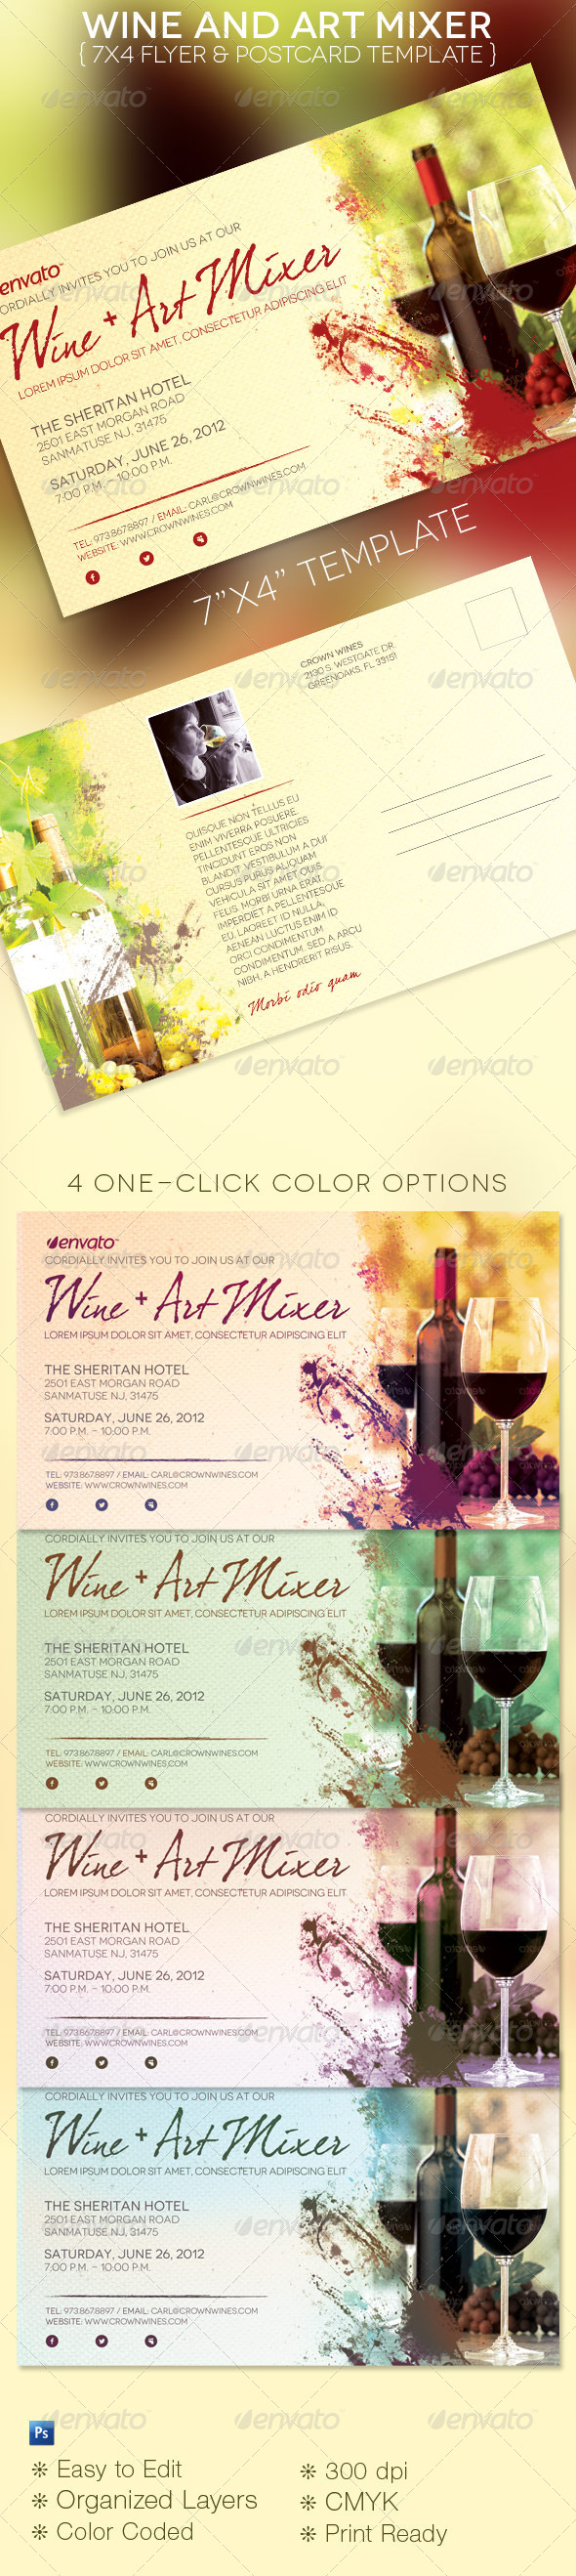 wine art mixer flyer template graphicriver. Black Bedroom Furniture Sets. Home Design Ideas